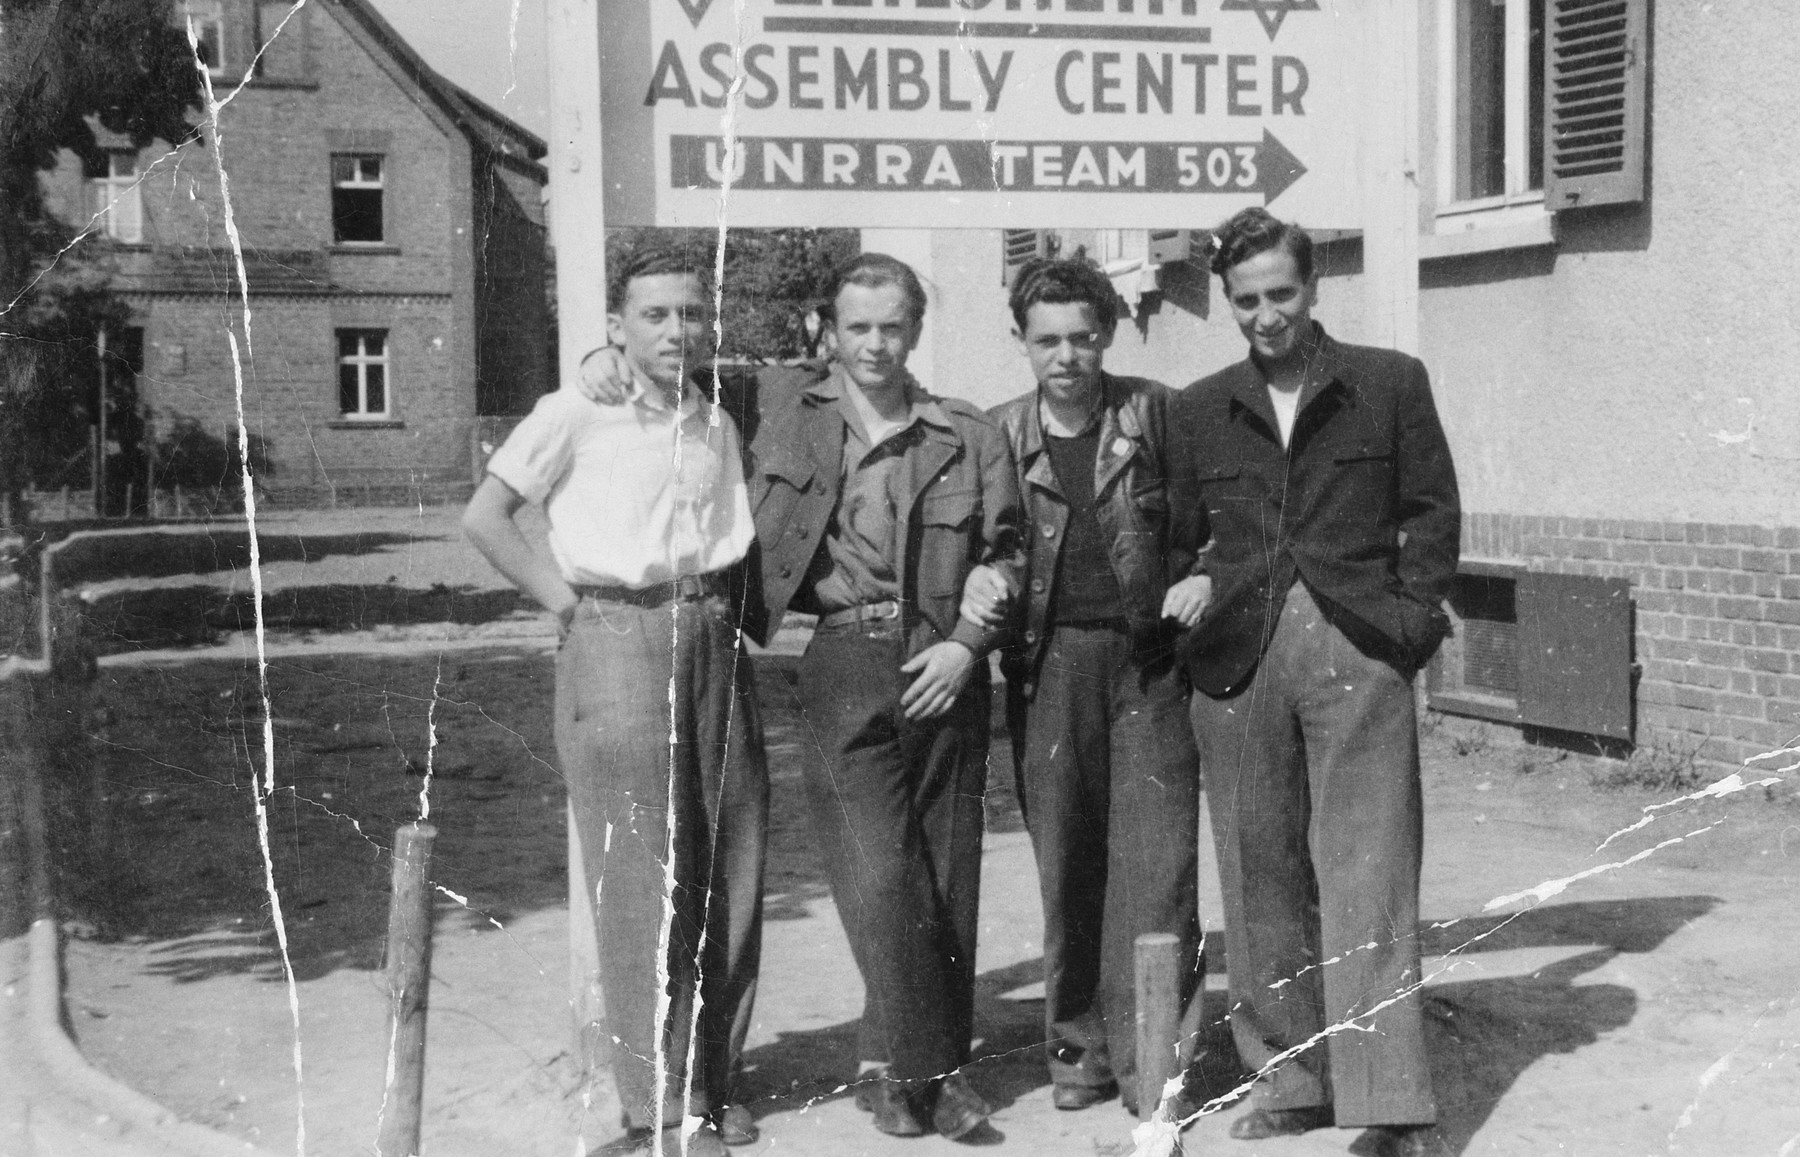 Four young Jewish men stand in front of an UNRRA Assembly Center sign in the Zeilsheim displaced person's camp.  Chuna Grynbaum is on the far right.